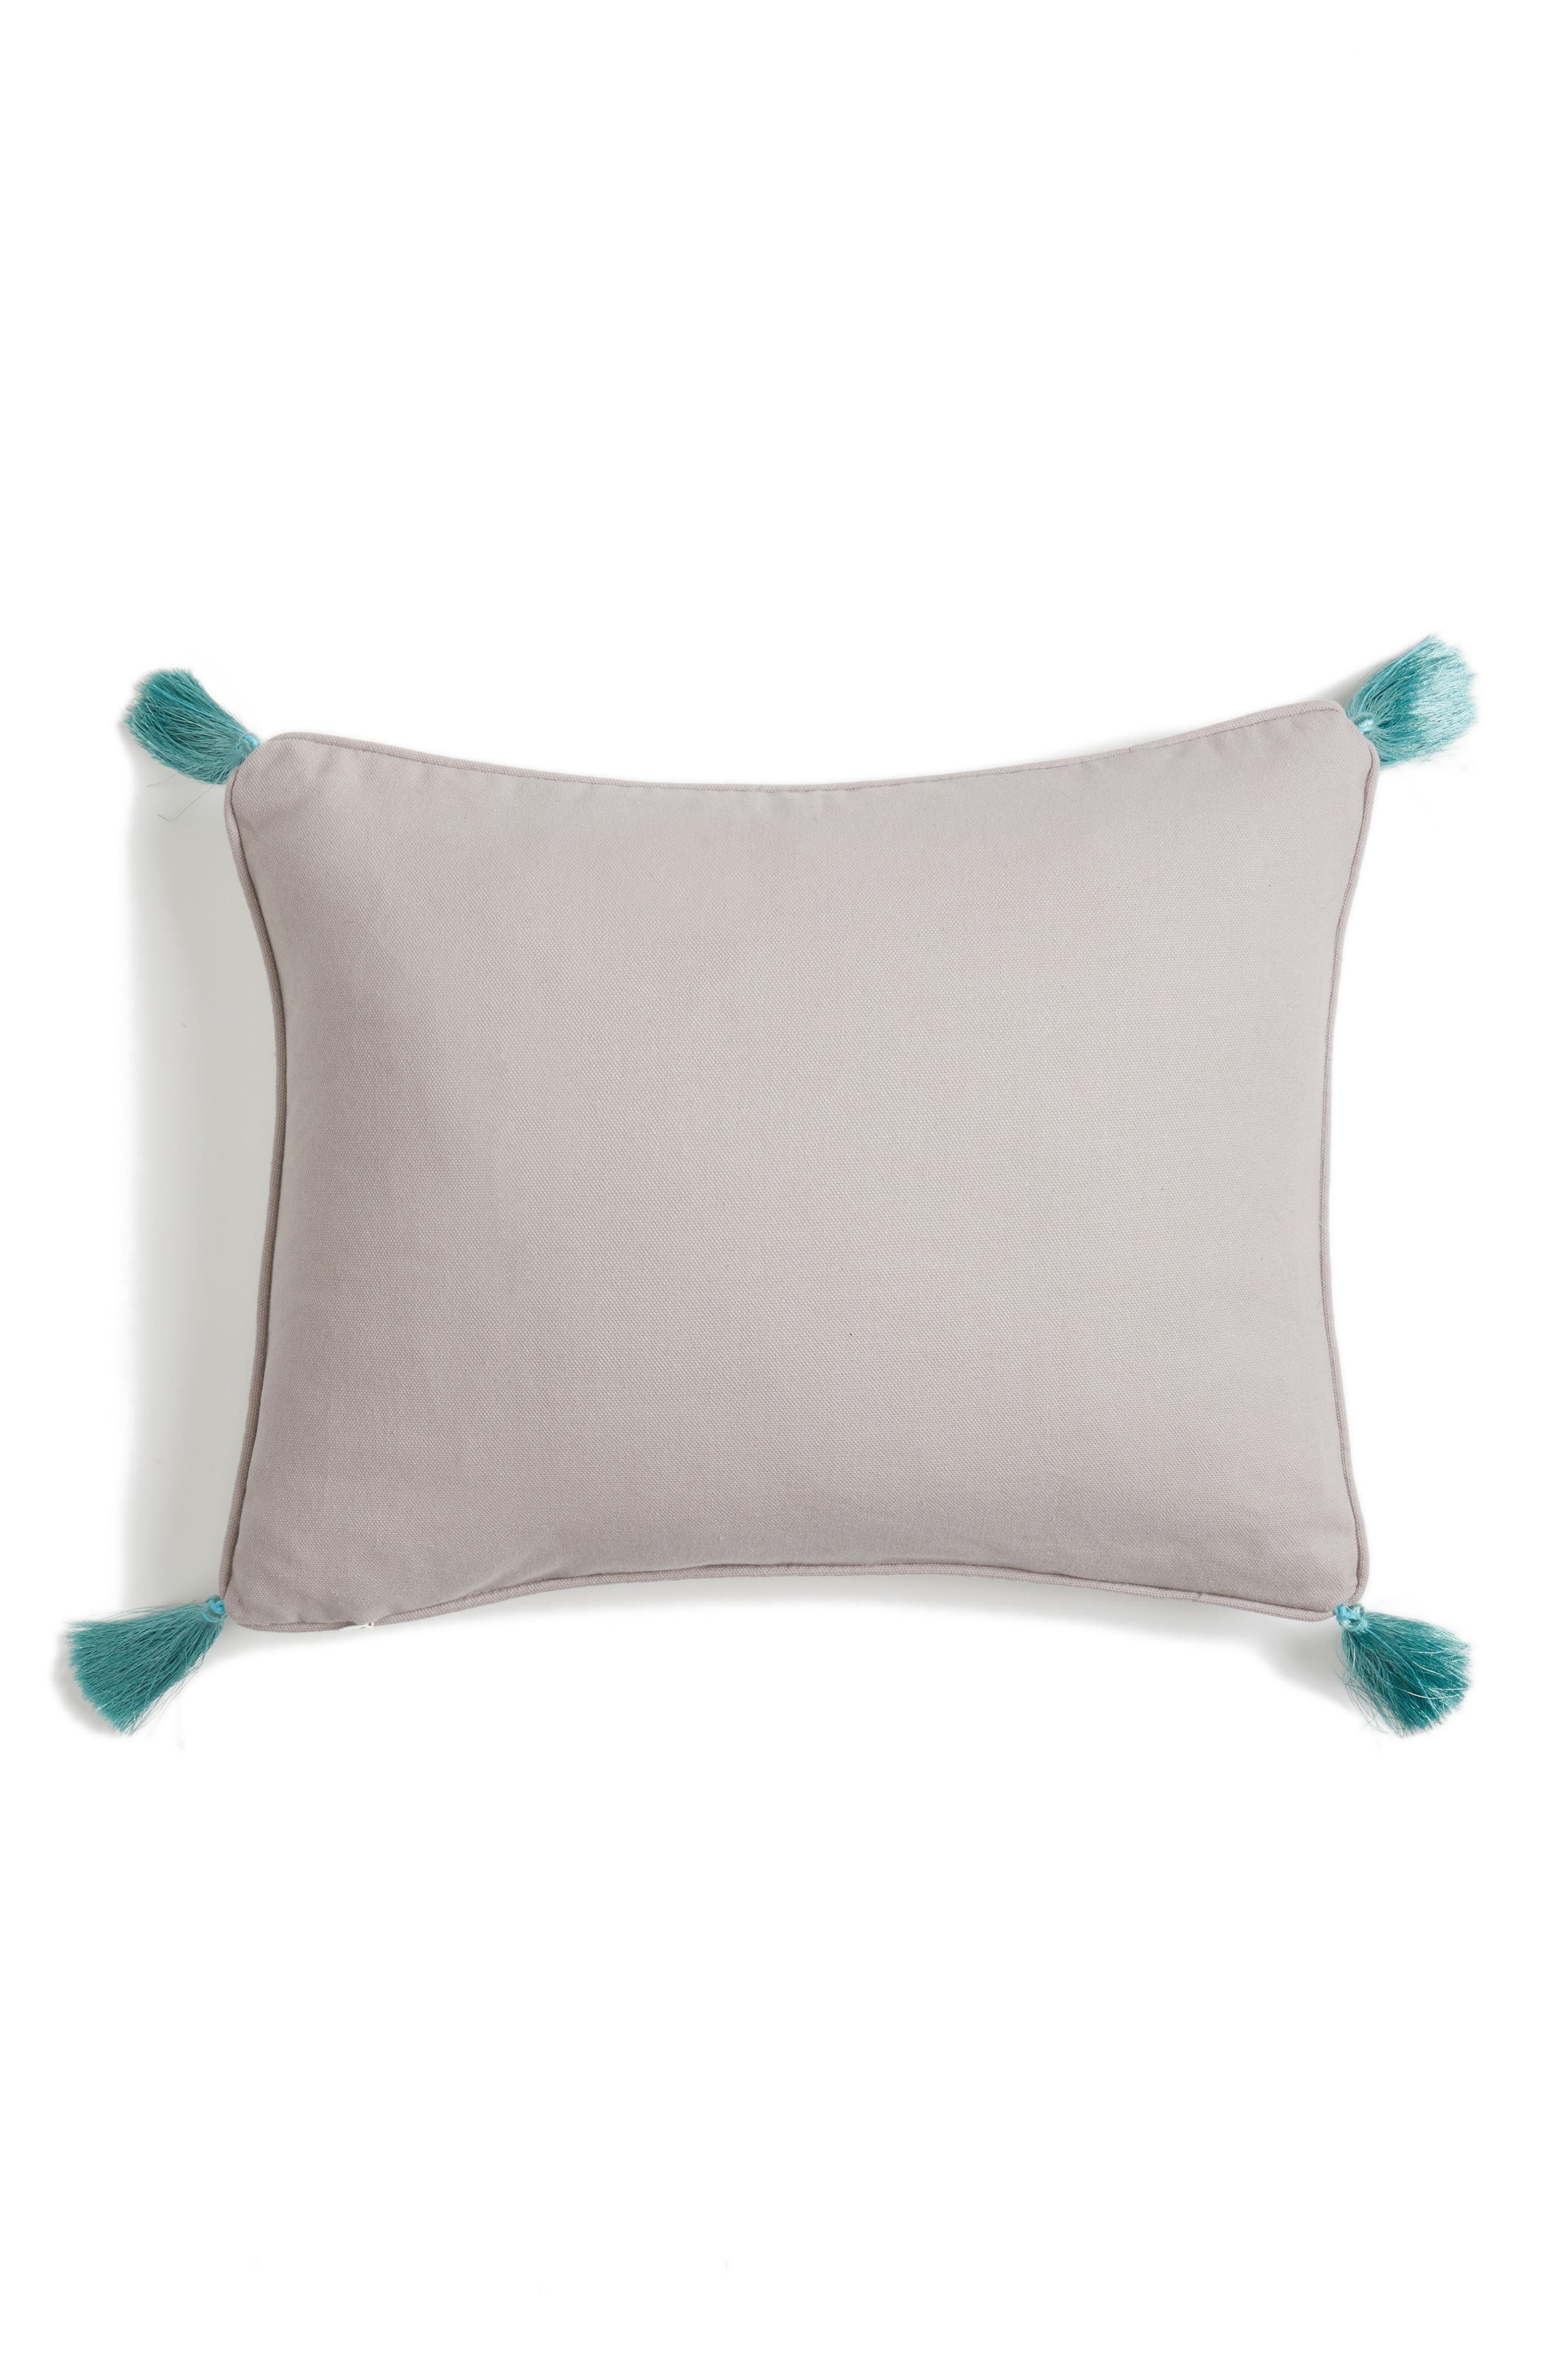 Addie Embroidered Tassel Pillow,                             Alternate thumbnail 2, color,                             020